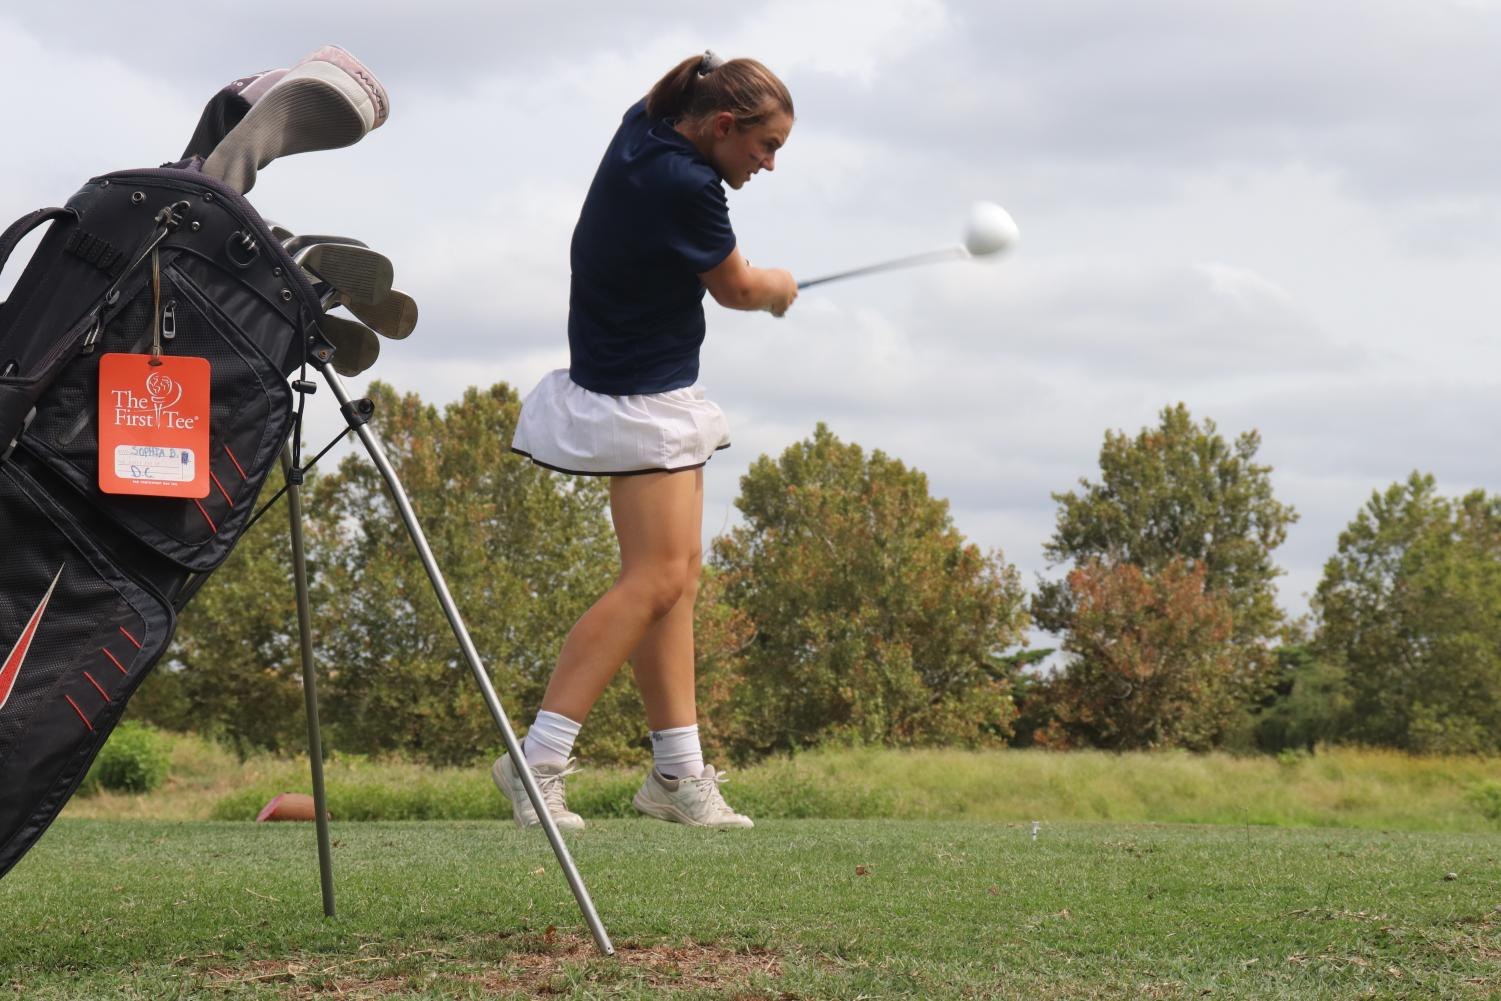 Sophomore Sophia Bandini swings her club during a tournament. The team attends multiple tournaments each season, where they are able to compete against golf teams from other schools.